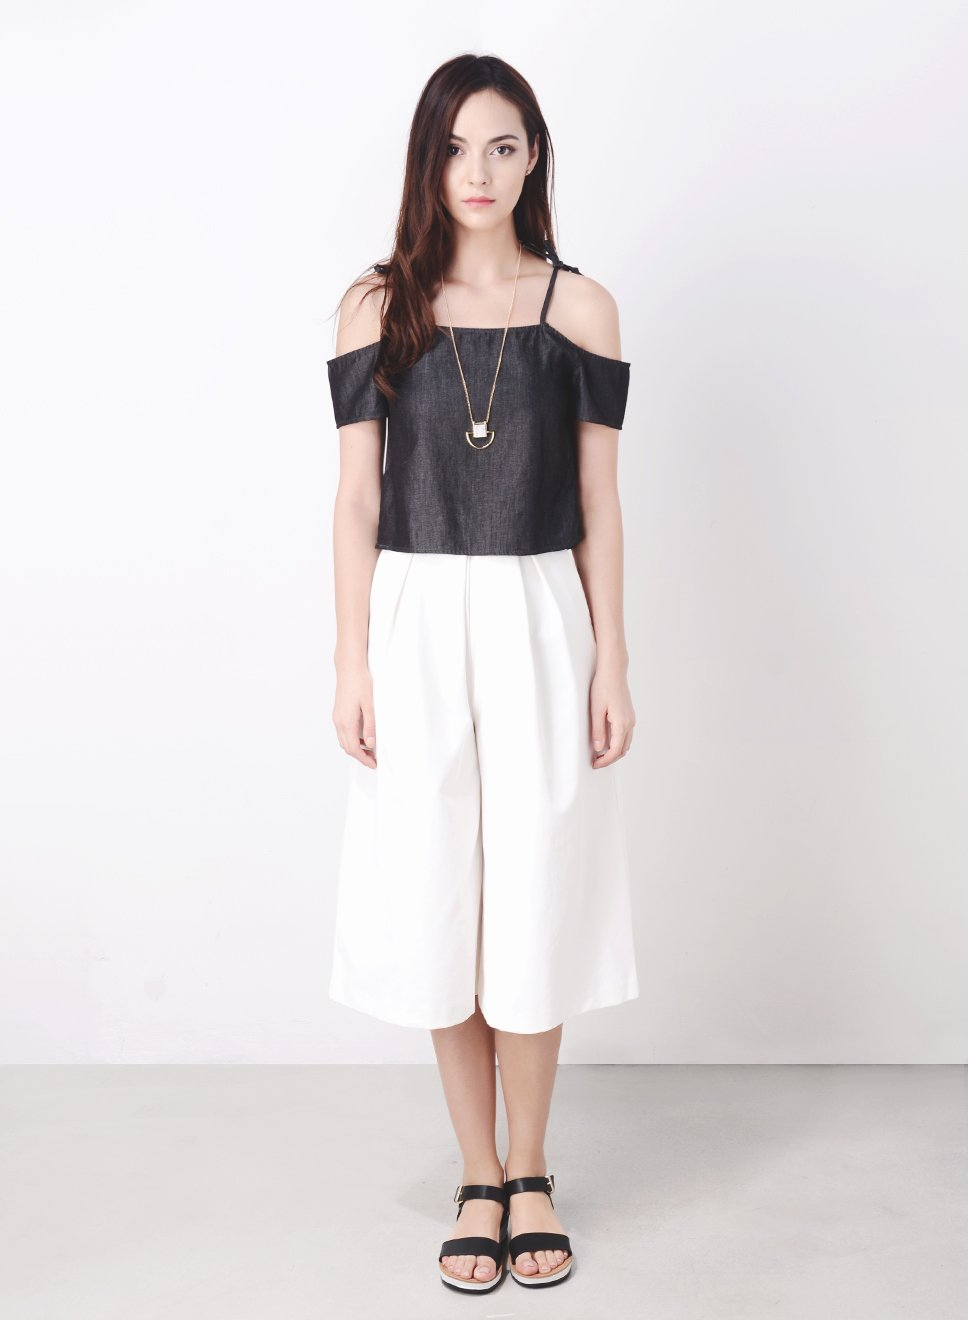 ADORN Tie Shoulder Top (Dark Wash) at $ 15.00 only sold at And Well Dressed Online Fashion Store Singapore